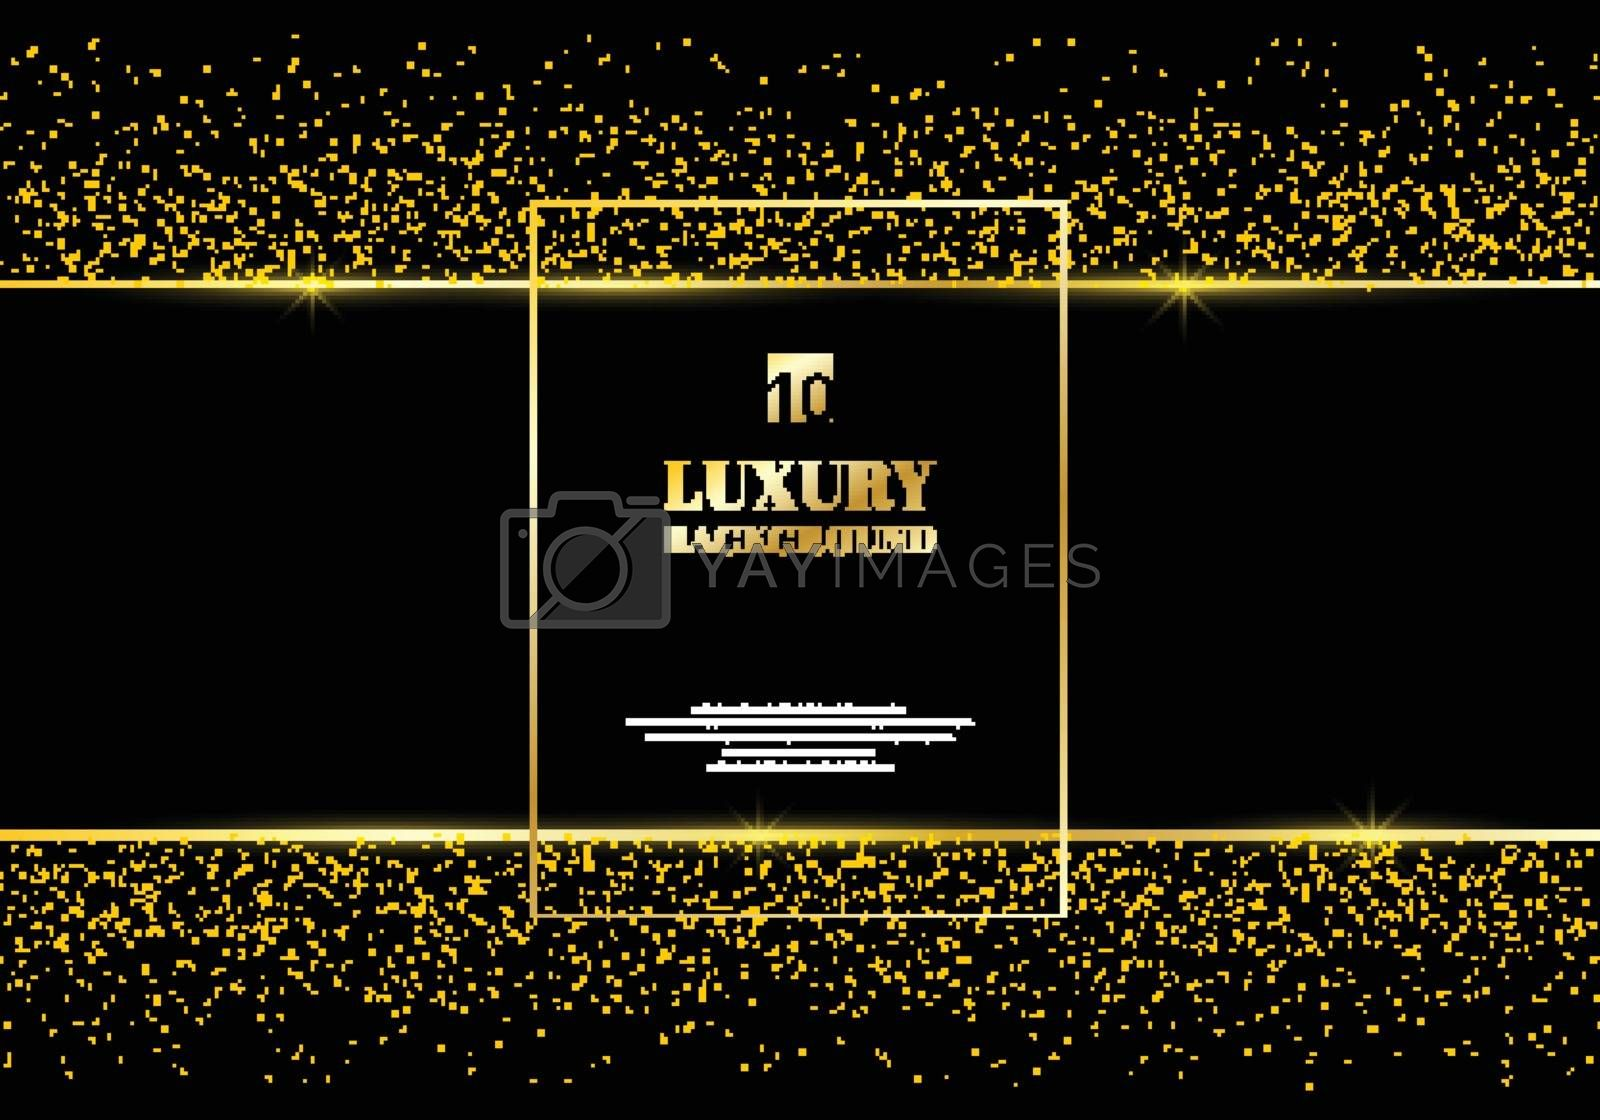 Abstract golden glitter and shiny gold frame on black background. Luxury elegant trendy style. You can use for wedding Invitation cards, packaging, banner, card, flyer, invitation, party, print advertising. etc. Vector illustration